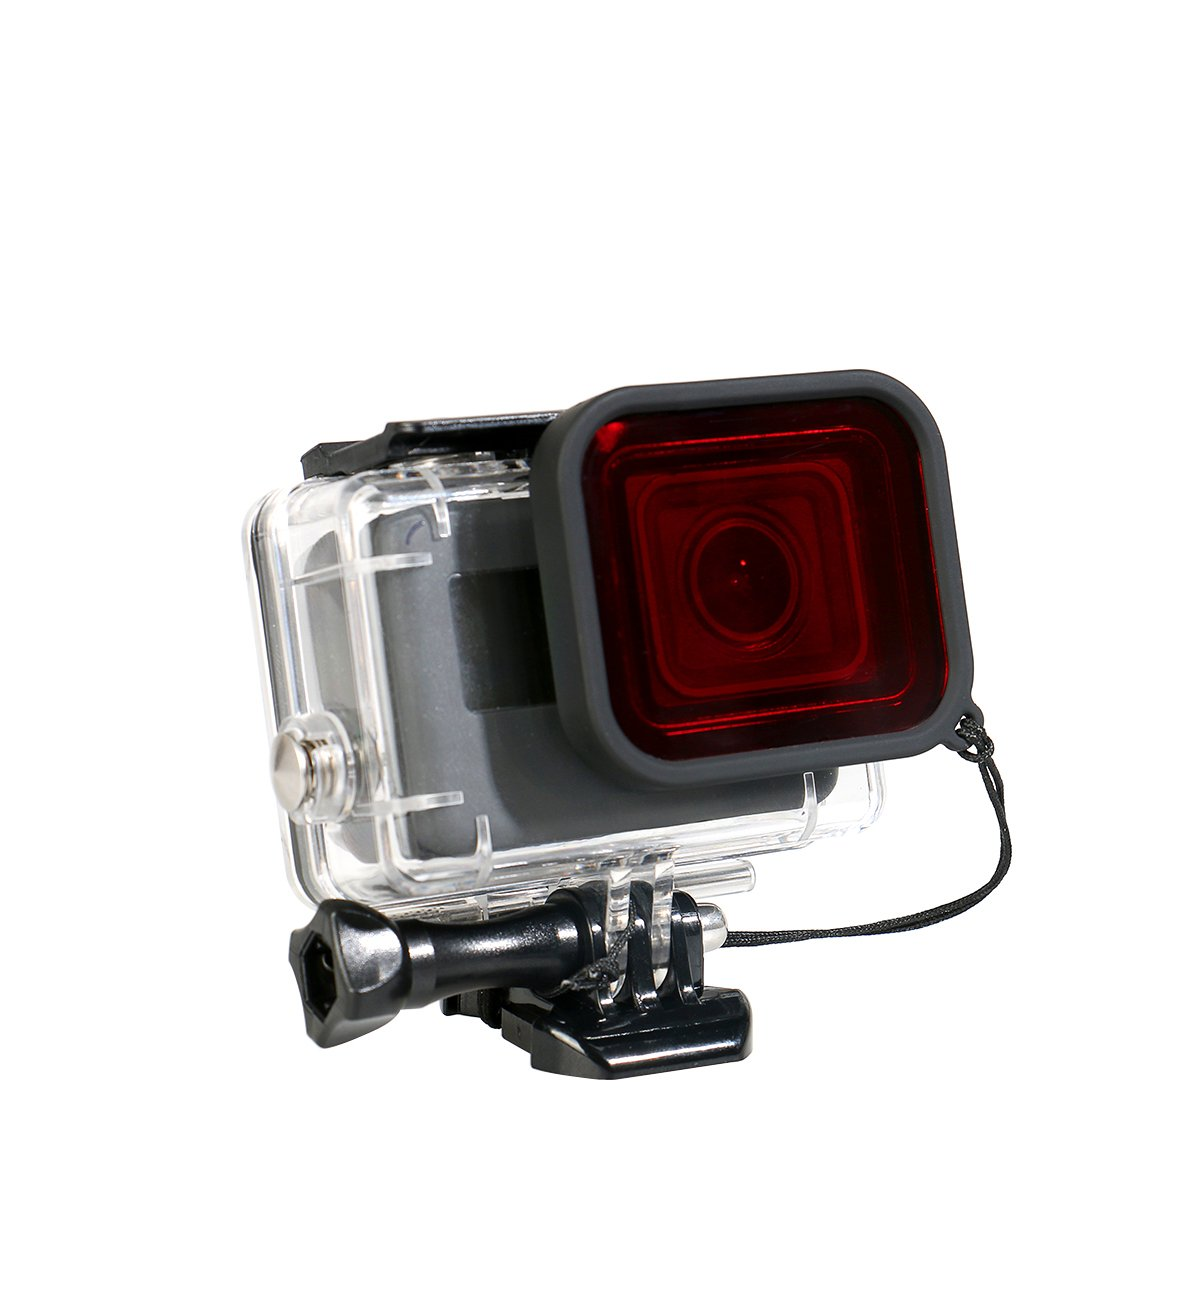 CEARI 45M Underwater Waterproof Diving Housing Protective Case Cover with Red Filter for Gopro Hero 5 Action Camera, Black